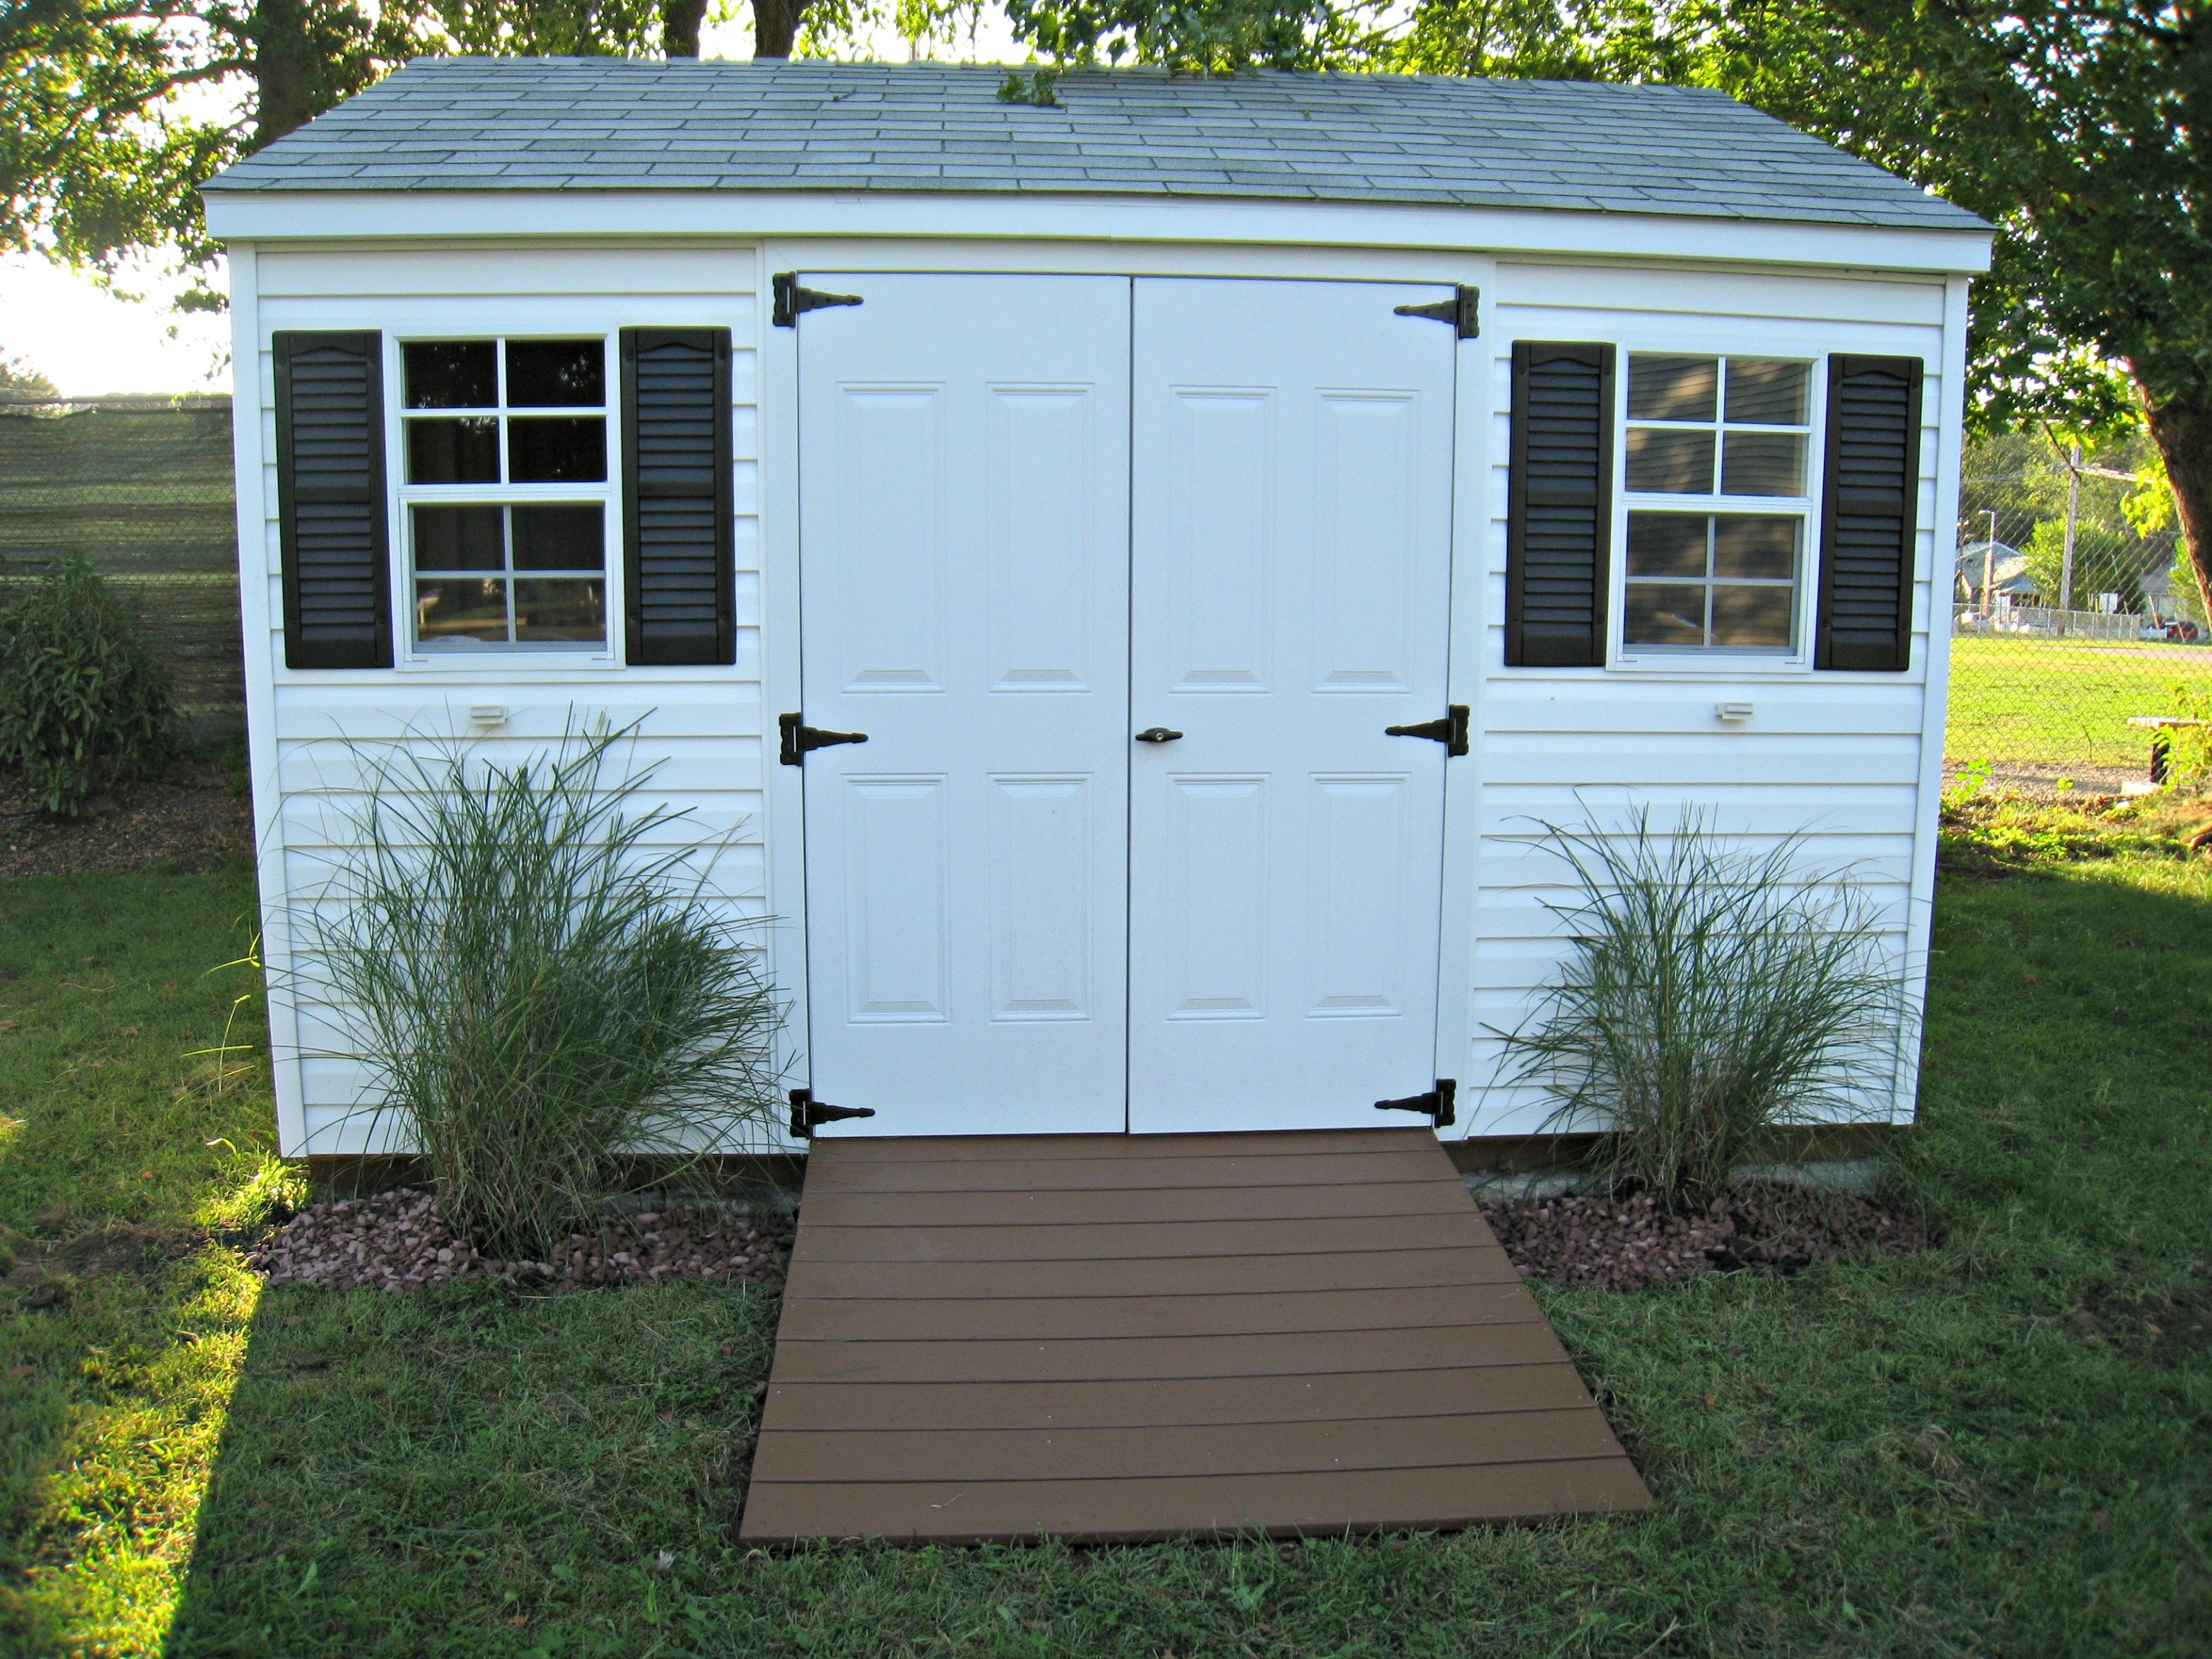 Sprucing Up a Storage Shed - momhomeguide.com